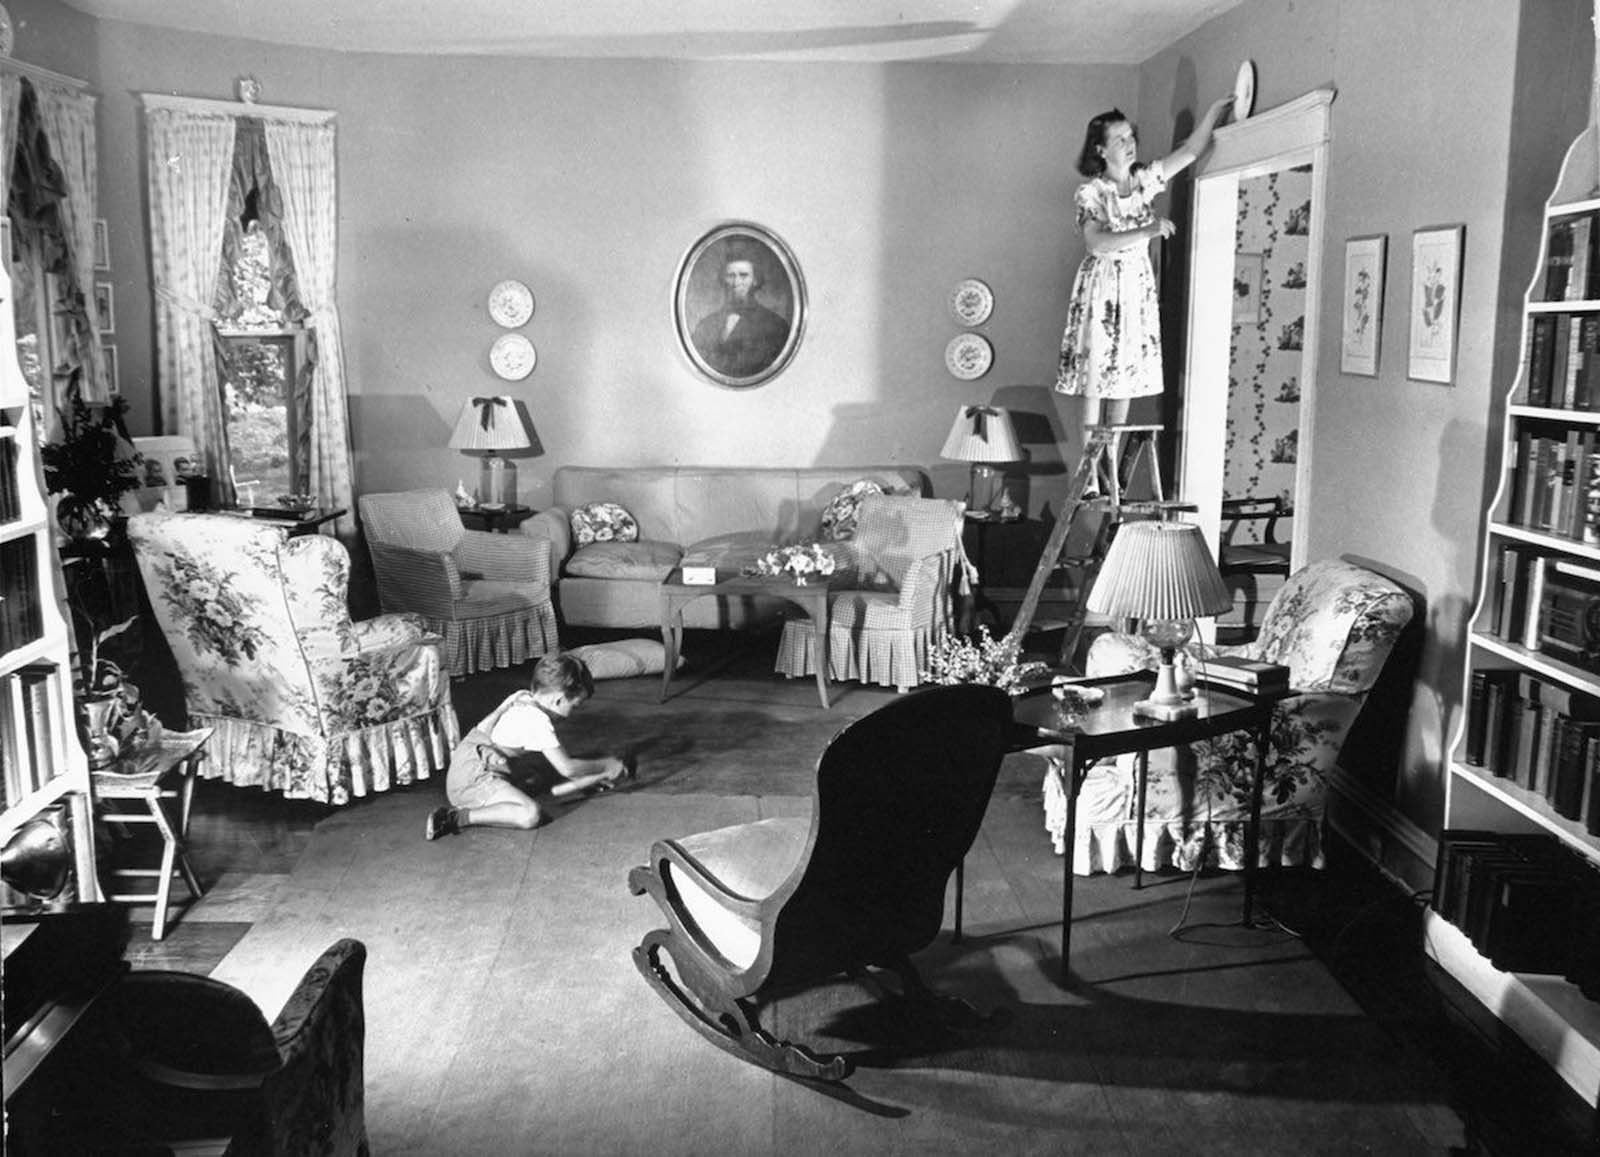 Jane standing on ladder to place special china plate as decoration above the doorway in the living room, which she decorated herself, as her son Tony plays on the floor.